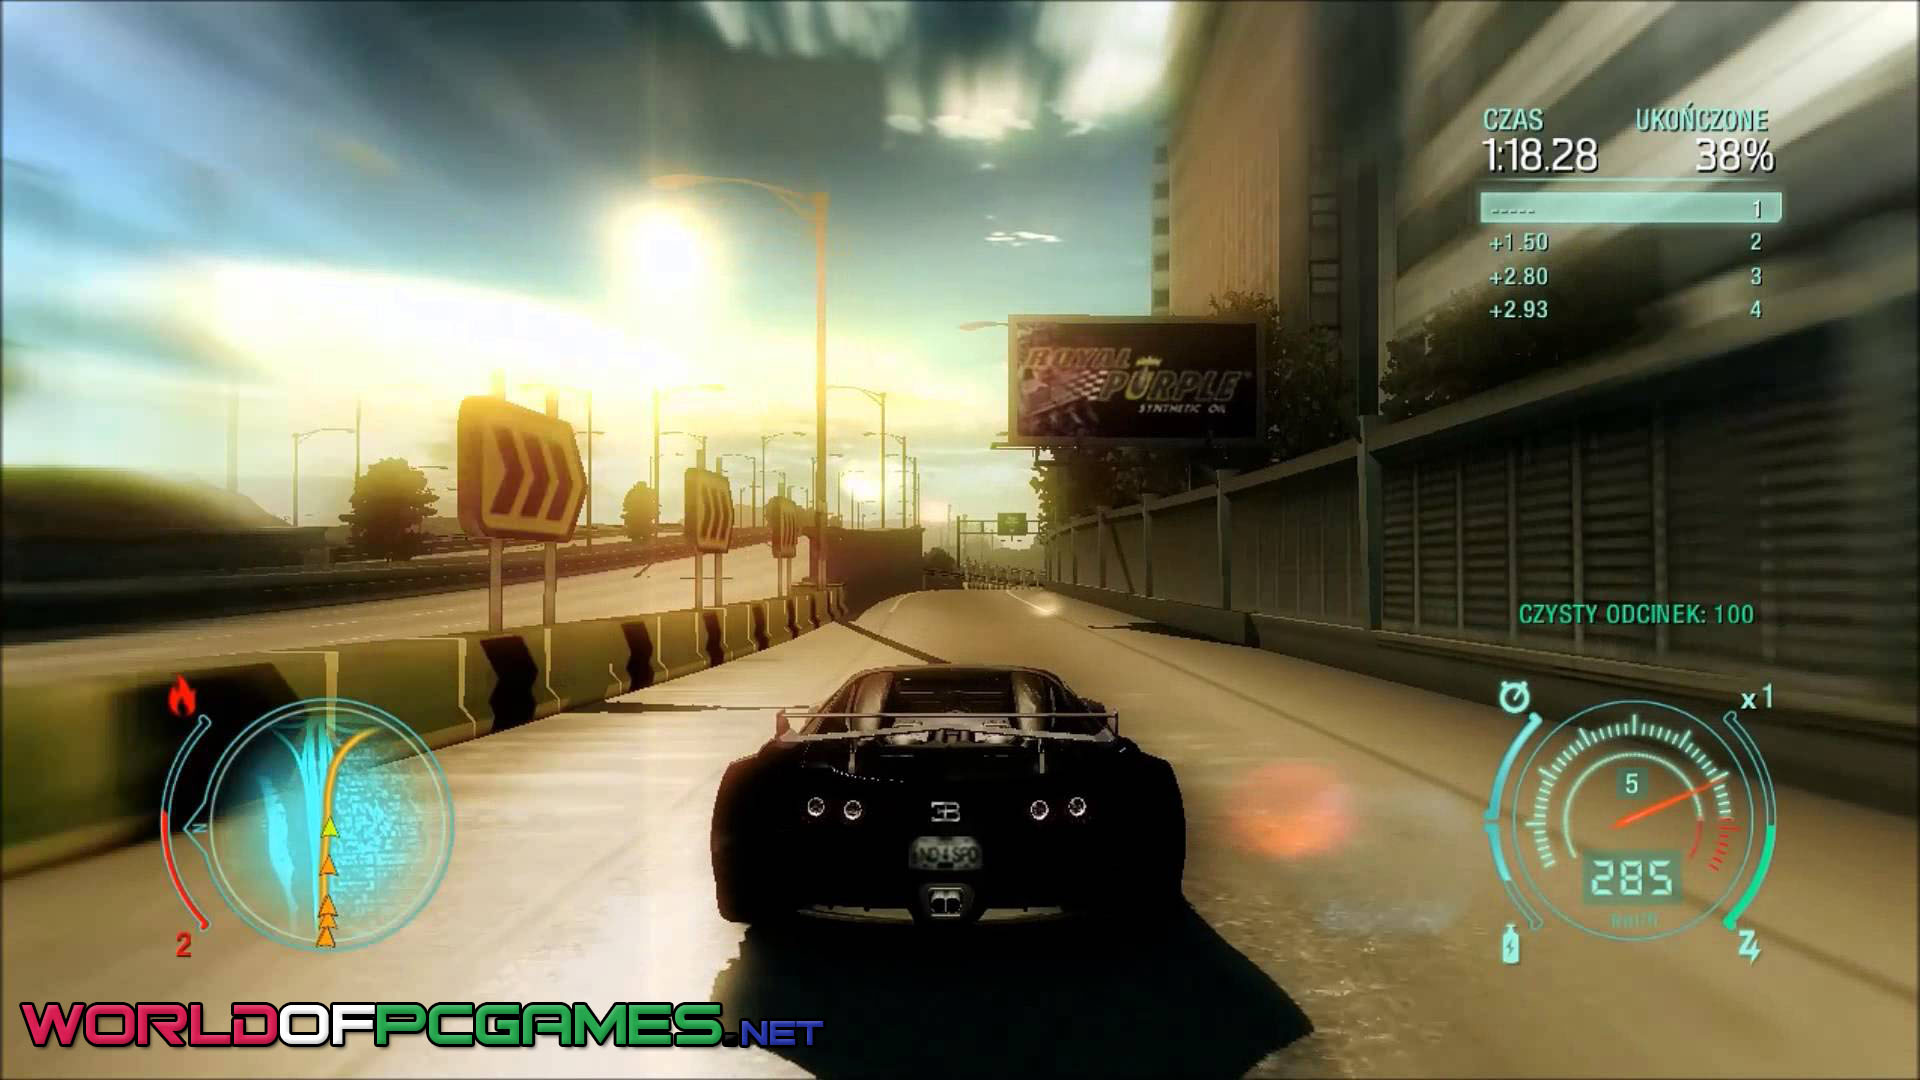 Need For Speed Undercover Free Download By Worldofpcgames.net 4 - Need For Speed Undercover Download Free